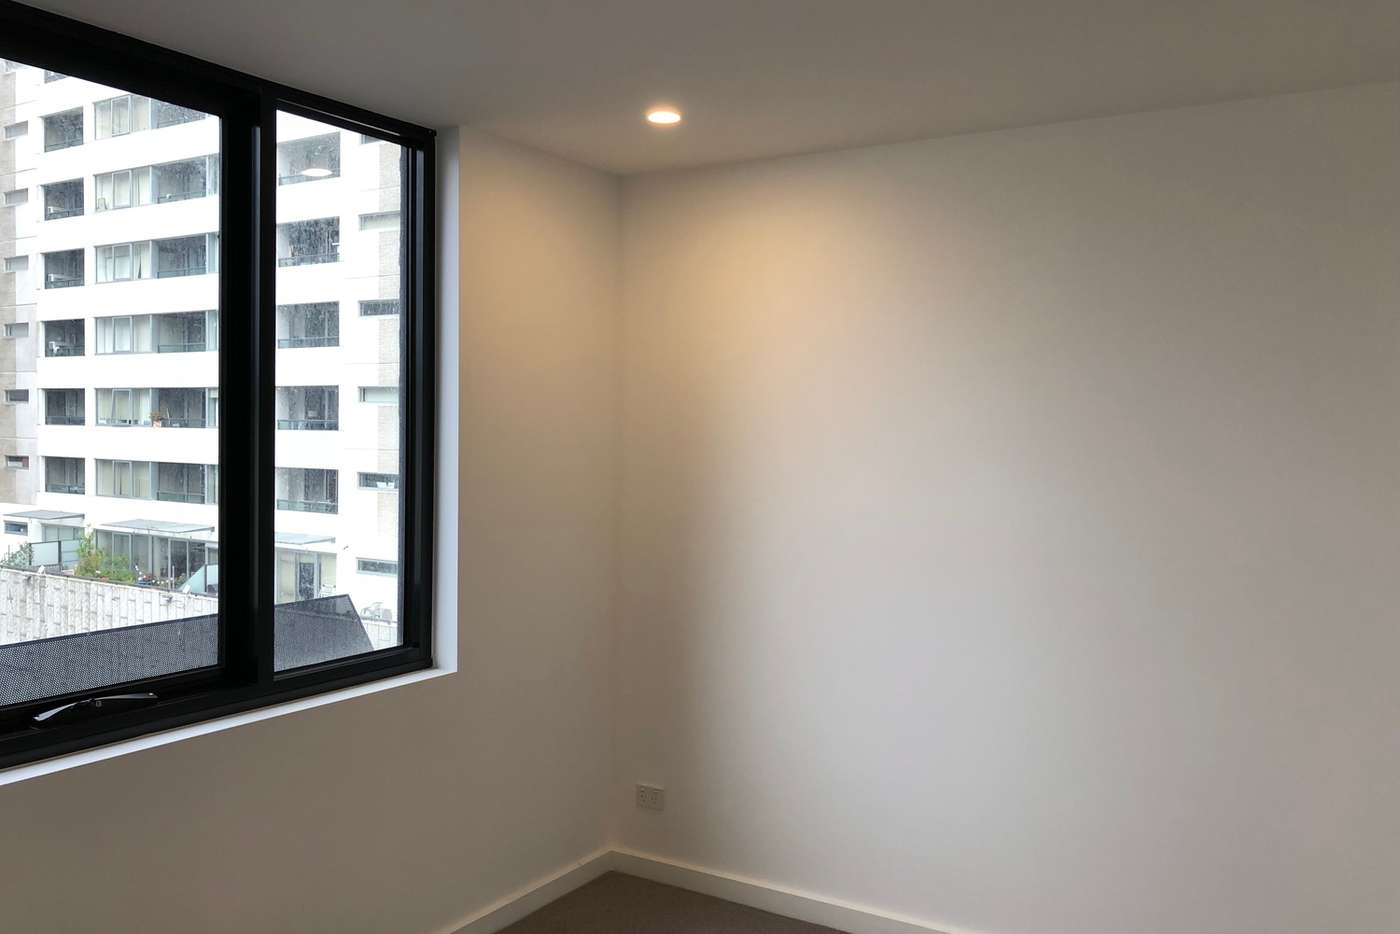 Seventh view of Homely apartment listing, 501/386-390 Spencer Street, West Melbourne VIC 3003